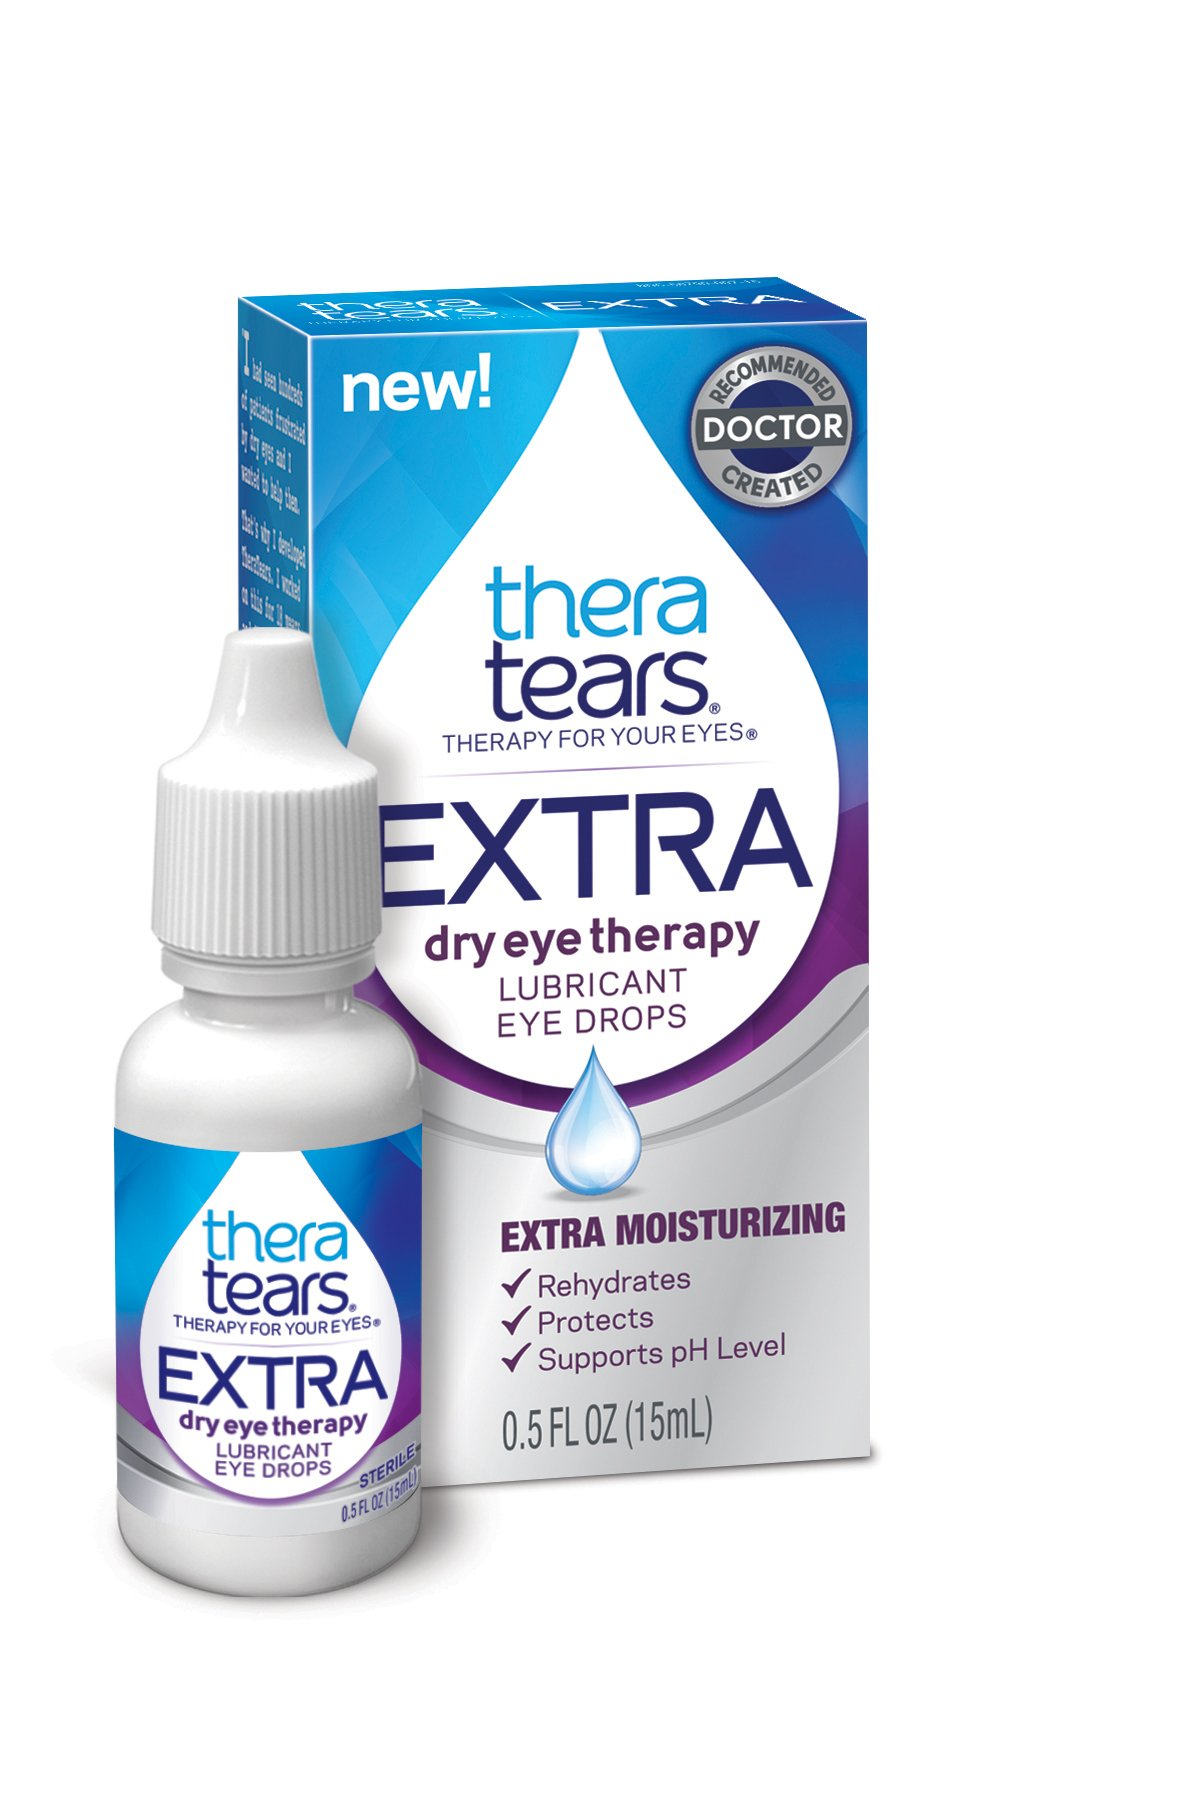 TheraTears Eye Drops for Dry Eyes, Extra Dry Eye Therapy Lubricant Eyedrops, 0.5 Fl oz, 15 mL